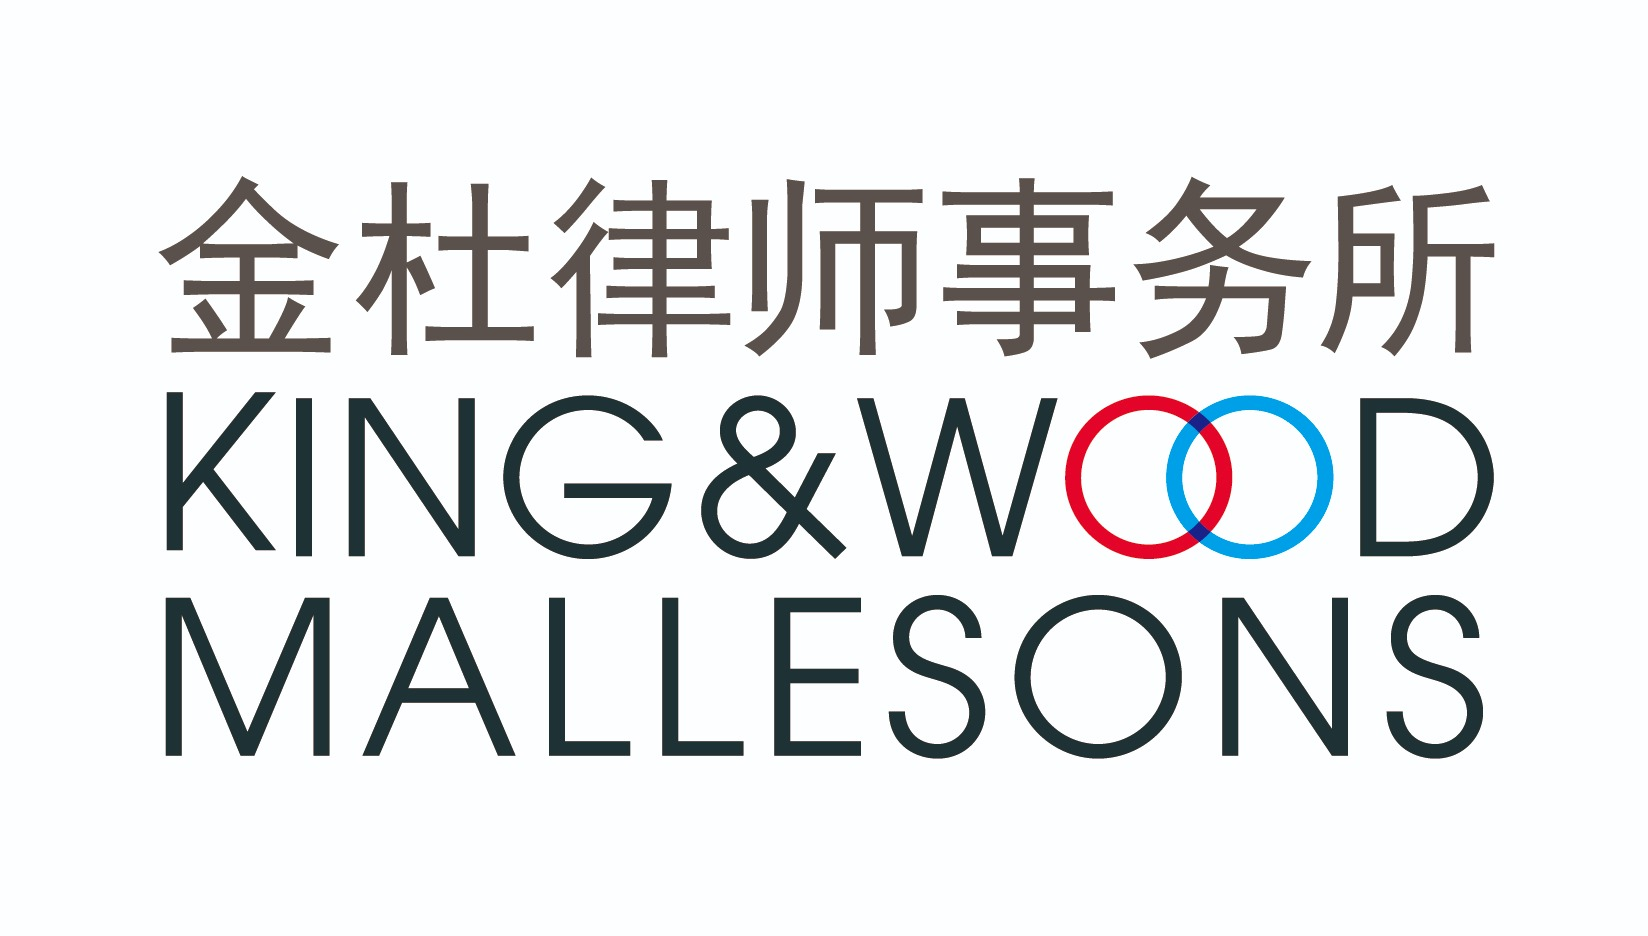 the King & Wood Mallesons logo.